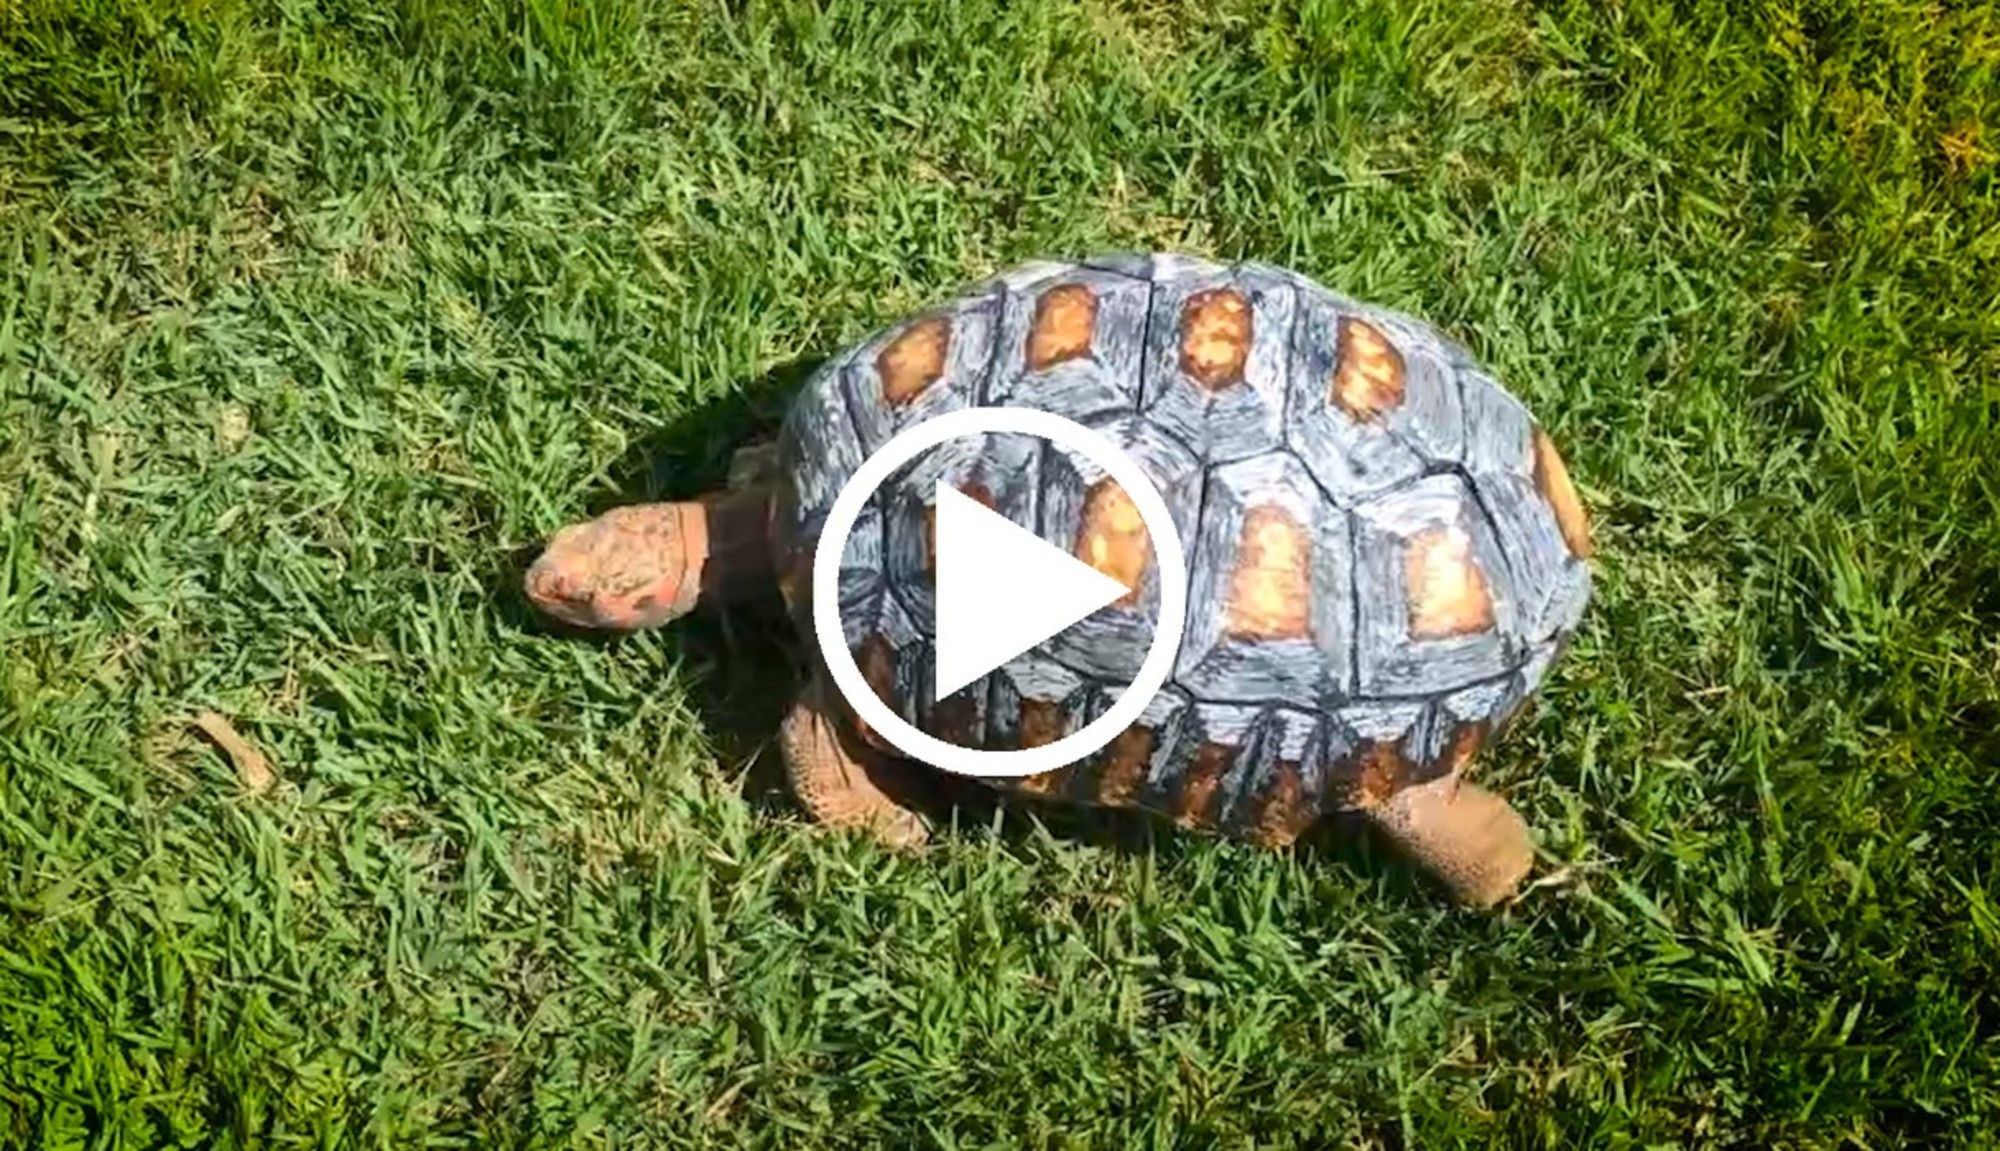 Tortoise Gets The Worlds First DPrinted Shell Shell Tortoise - Tortoise gets 3d printed shell